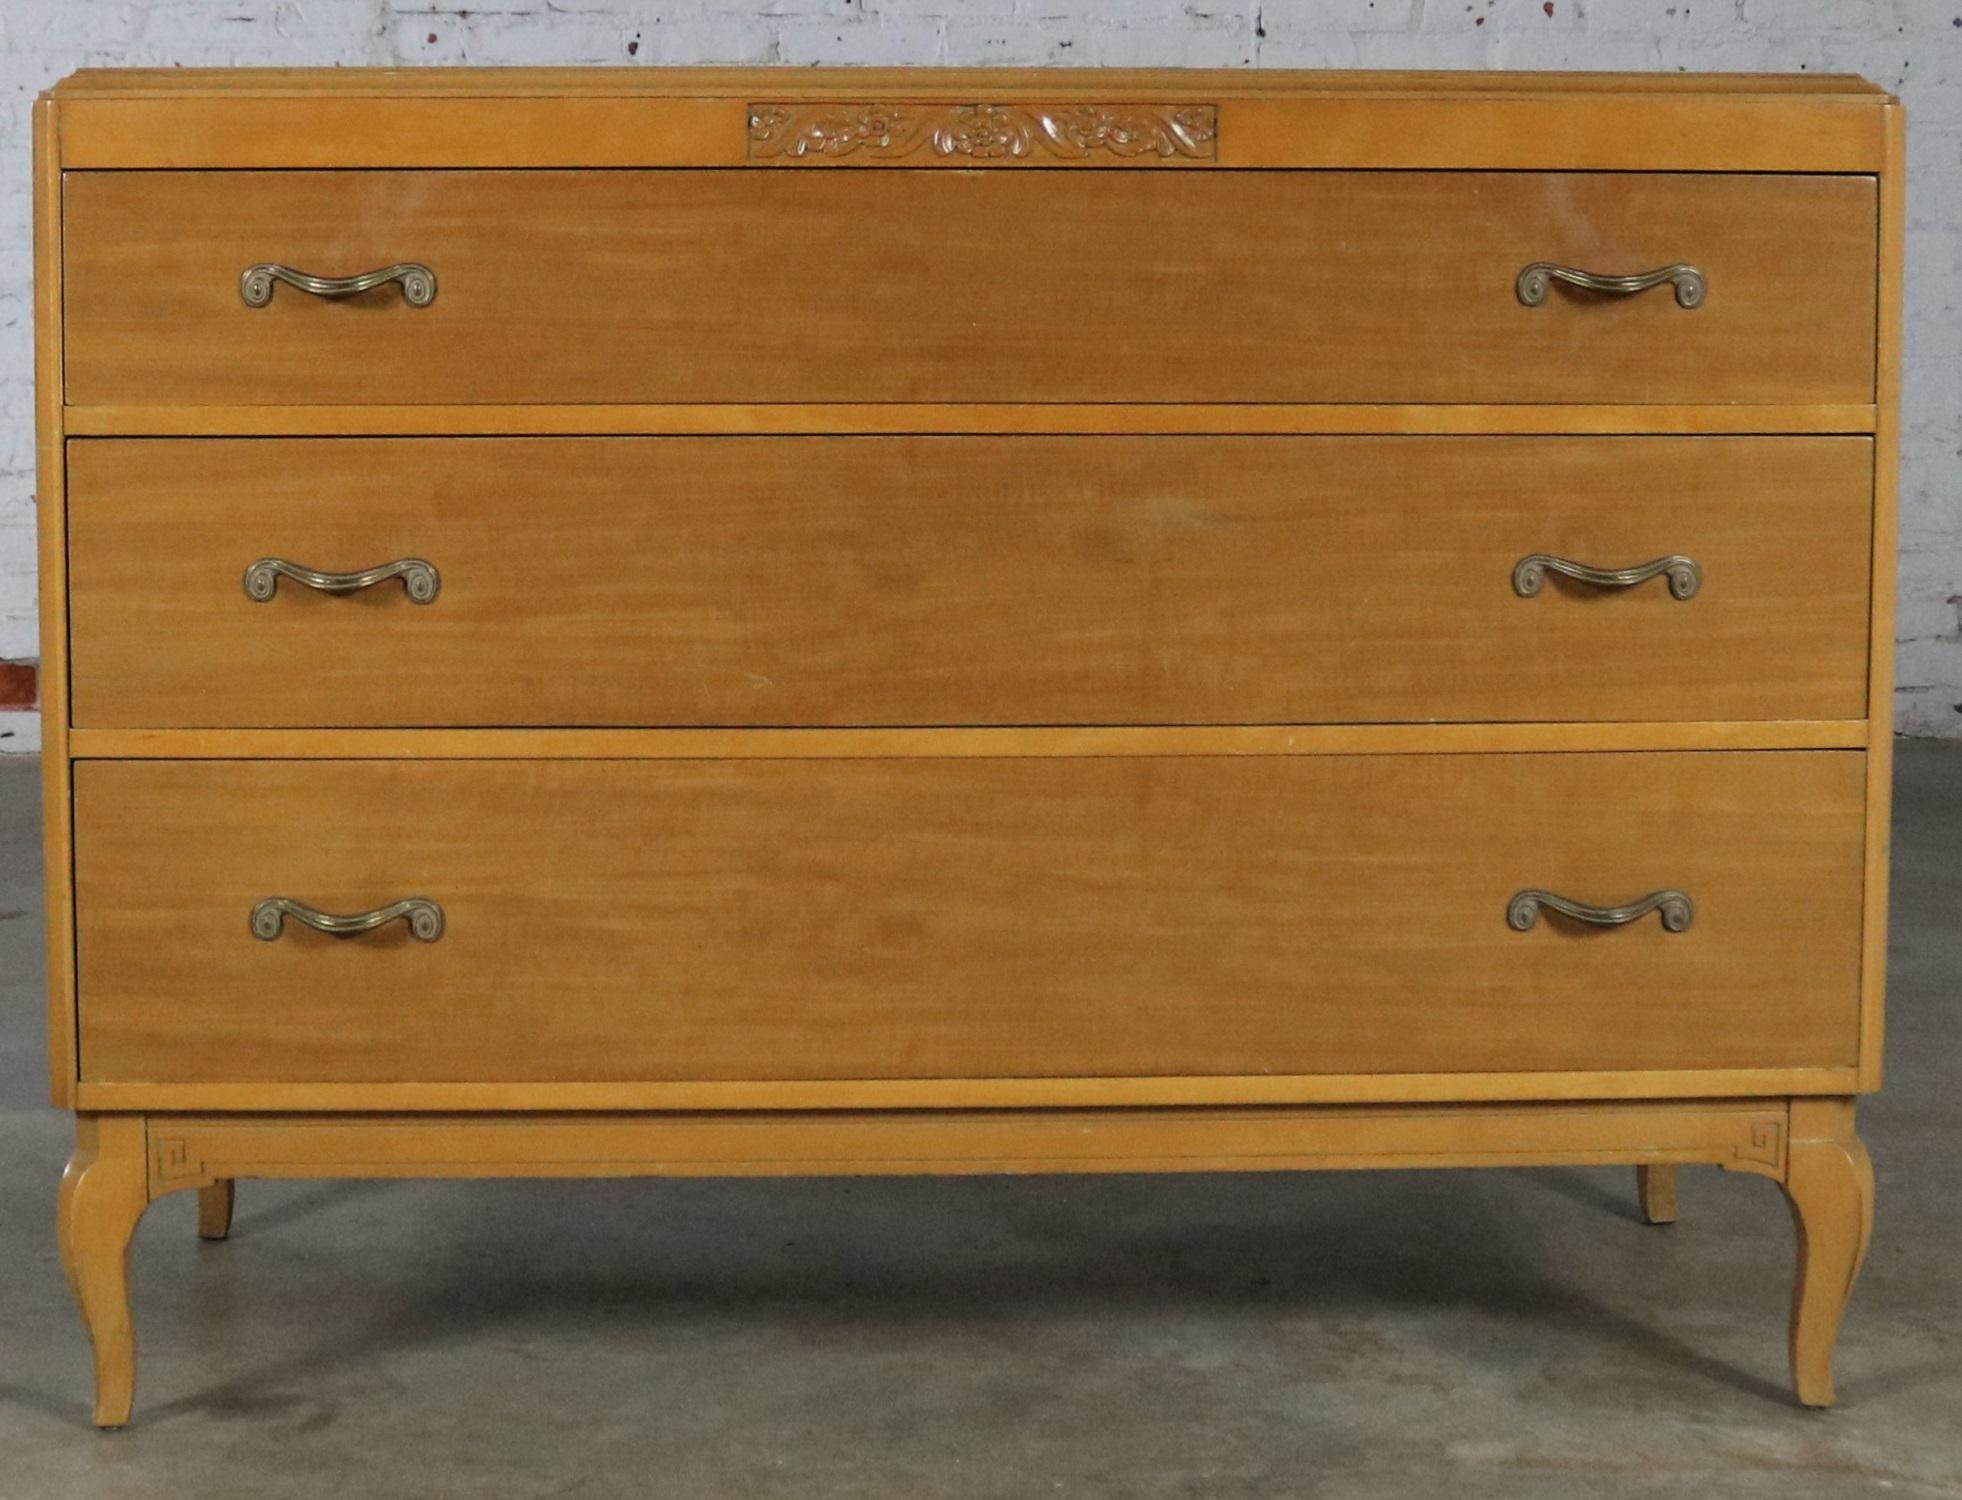 Art Deco Style Low Dresser By Rway Northern Furniture Company Of